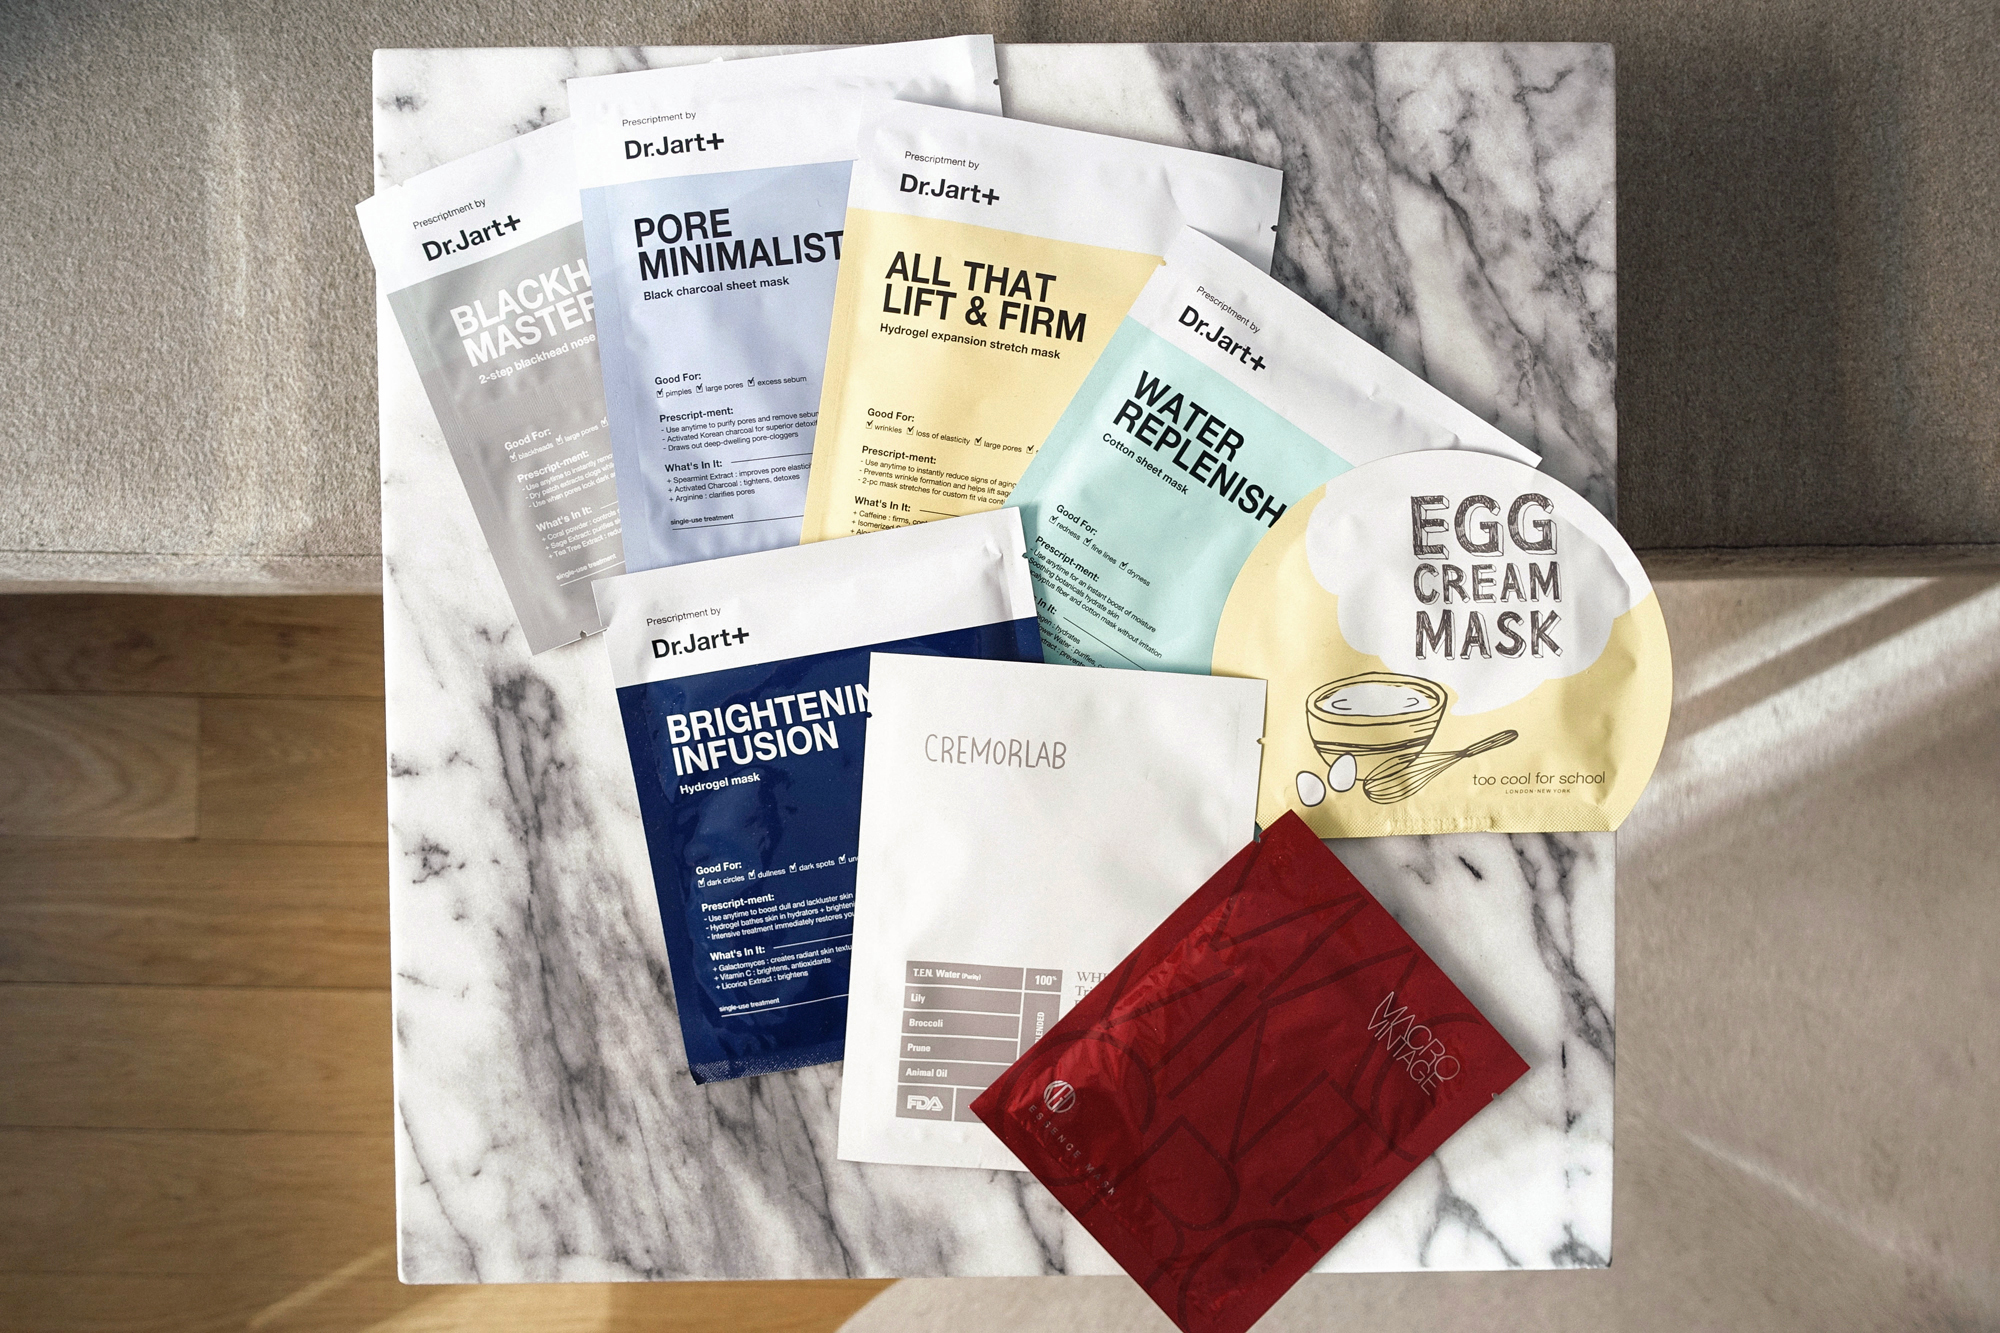 Dr. Jart Masks ,  Cremorlab Floral Mask ,  Too Cool For School Egg Mask ,  Koh Gen Do Essence Mask